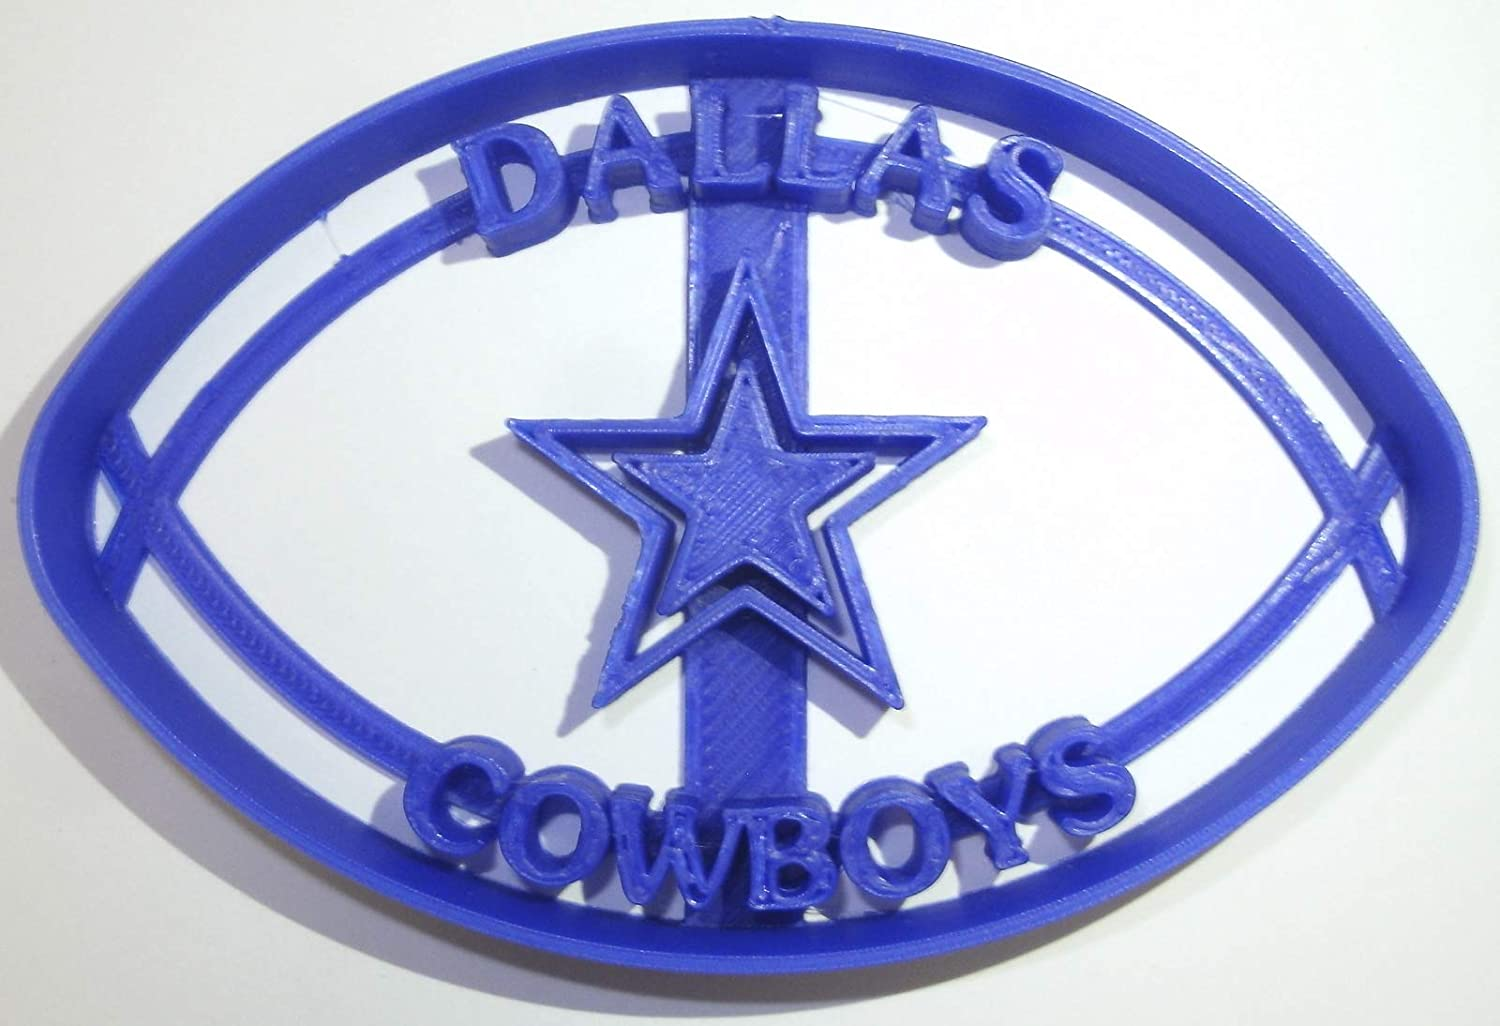 DALLAS COWBOYS NFL FOOTBALL TEAM SPORTS LOGO SPECIAL OCCASION FONDANT STAMP CUTTER OR CUPCAKE TOPPER SIZE 1.75